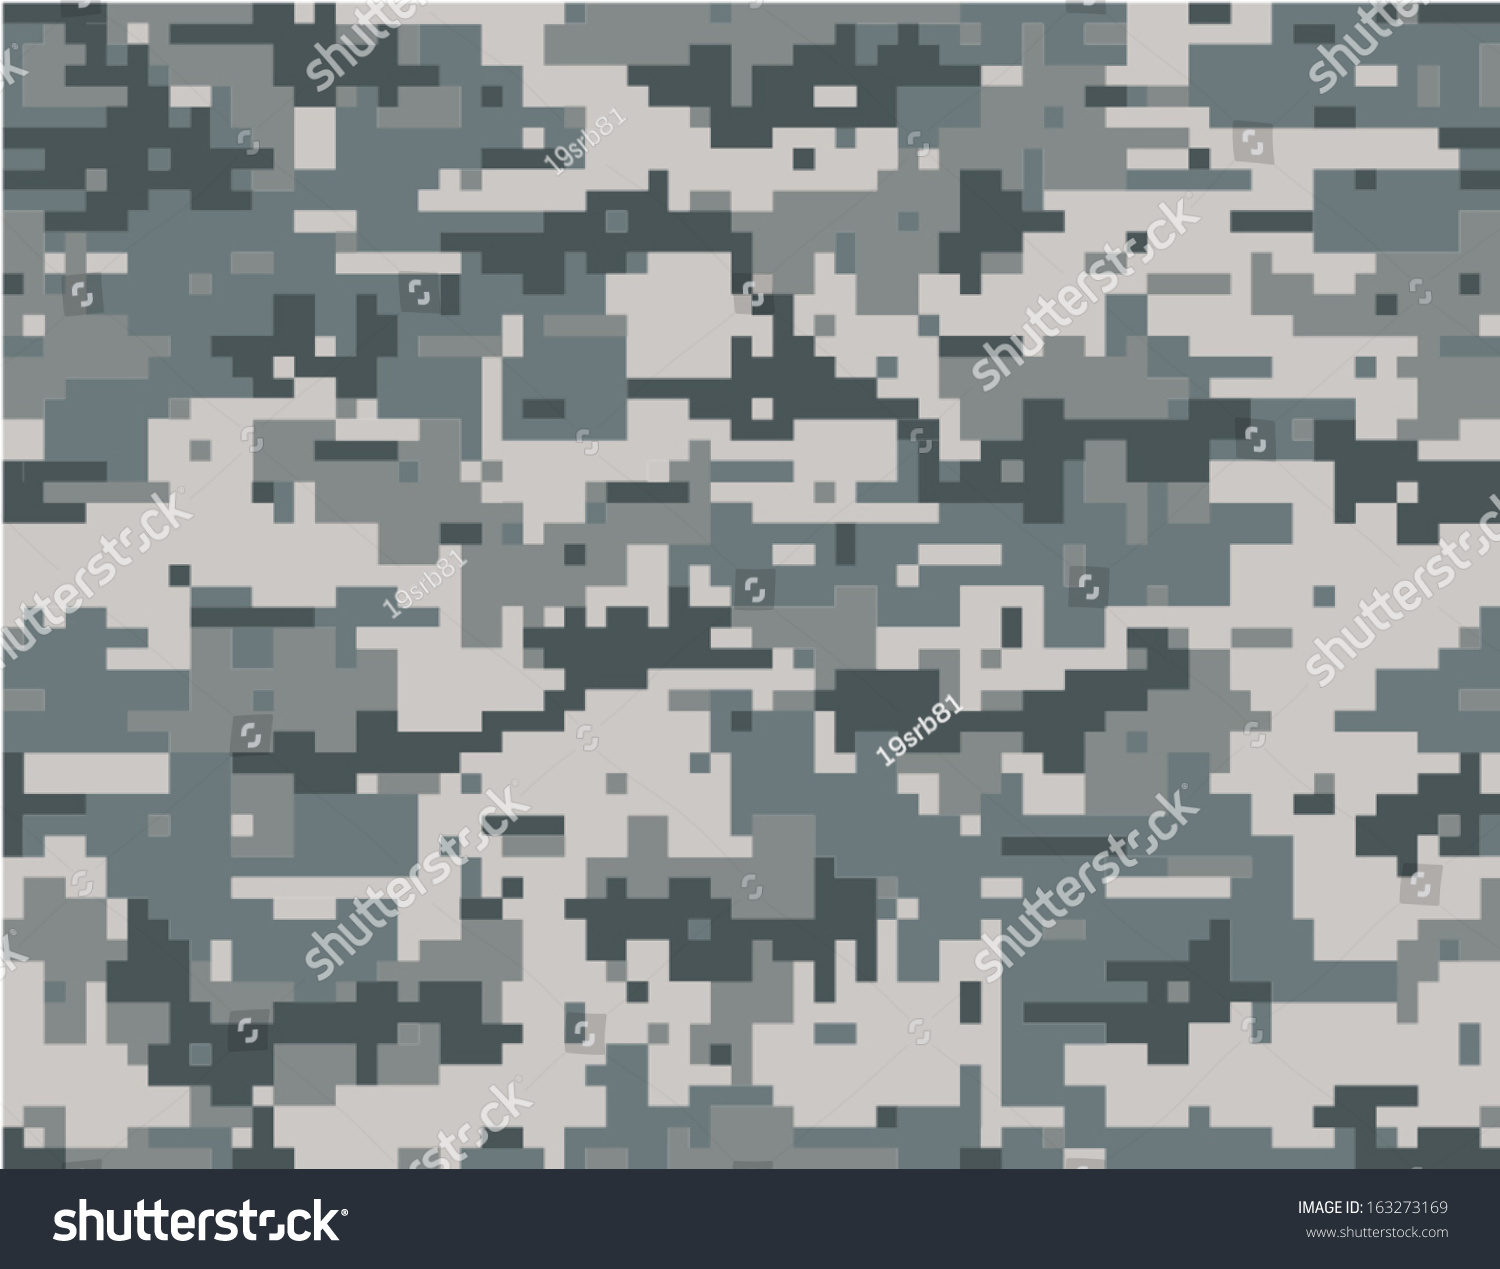 Digital Camouflage Seamless Pattern Stock Vector 163273169 ...